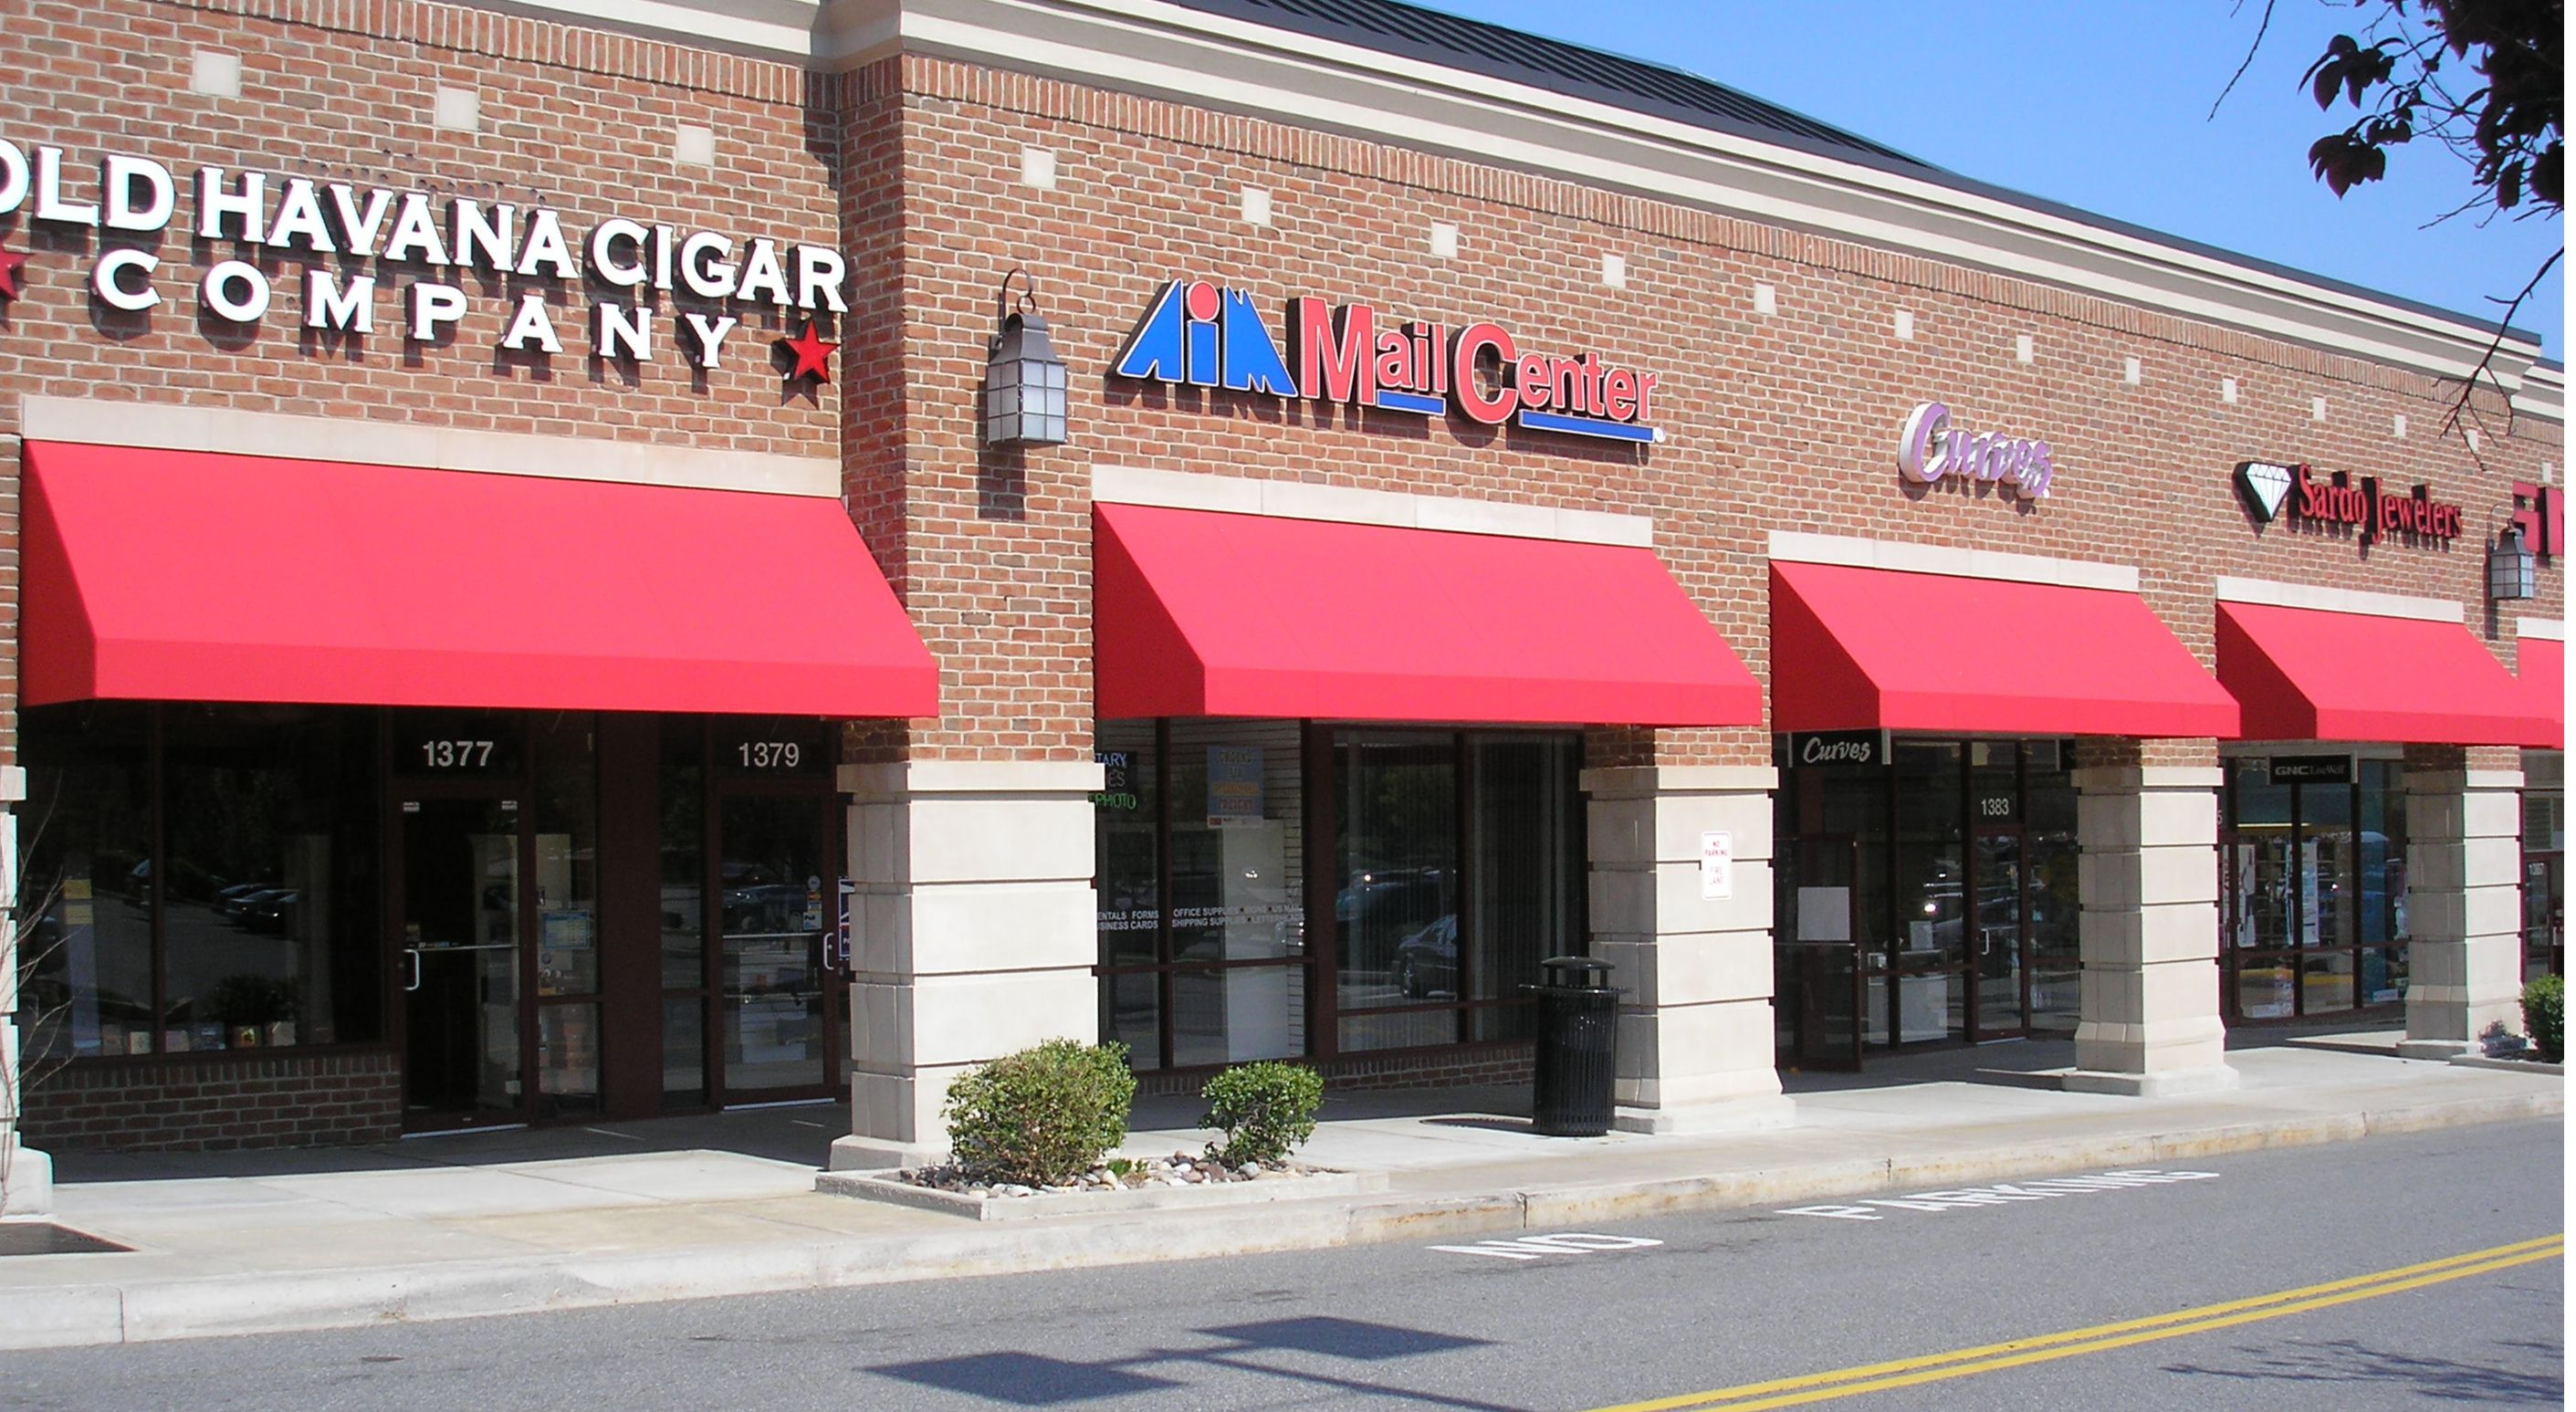 The Shoppes At Dillworthtown Crossings Storefront Awnings Kreider S Canvas Service Inc Awning Store Fronts Fabric Awning